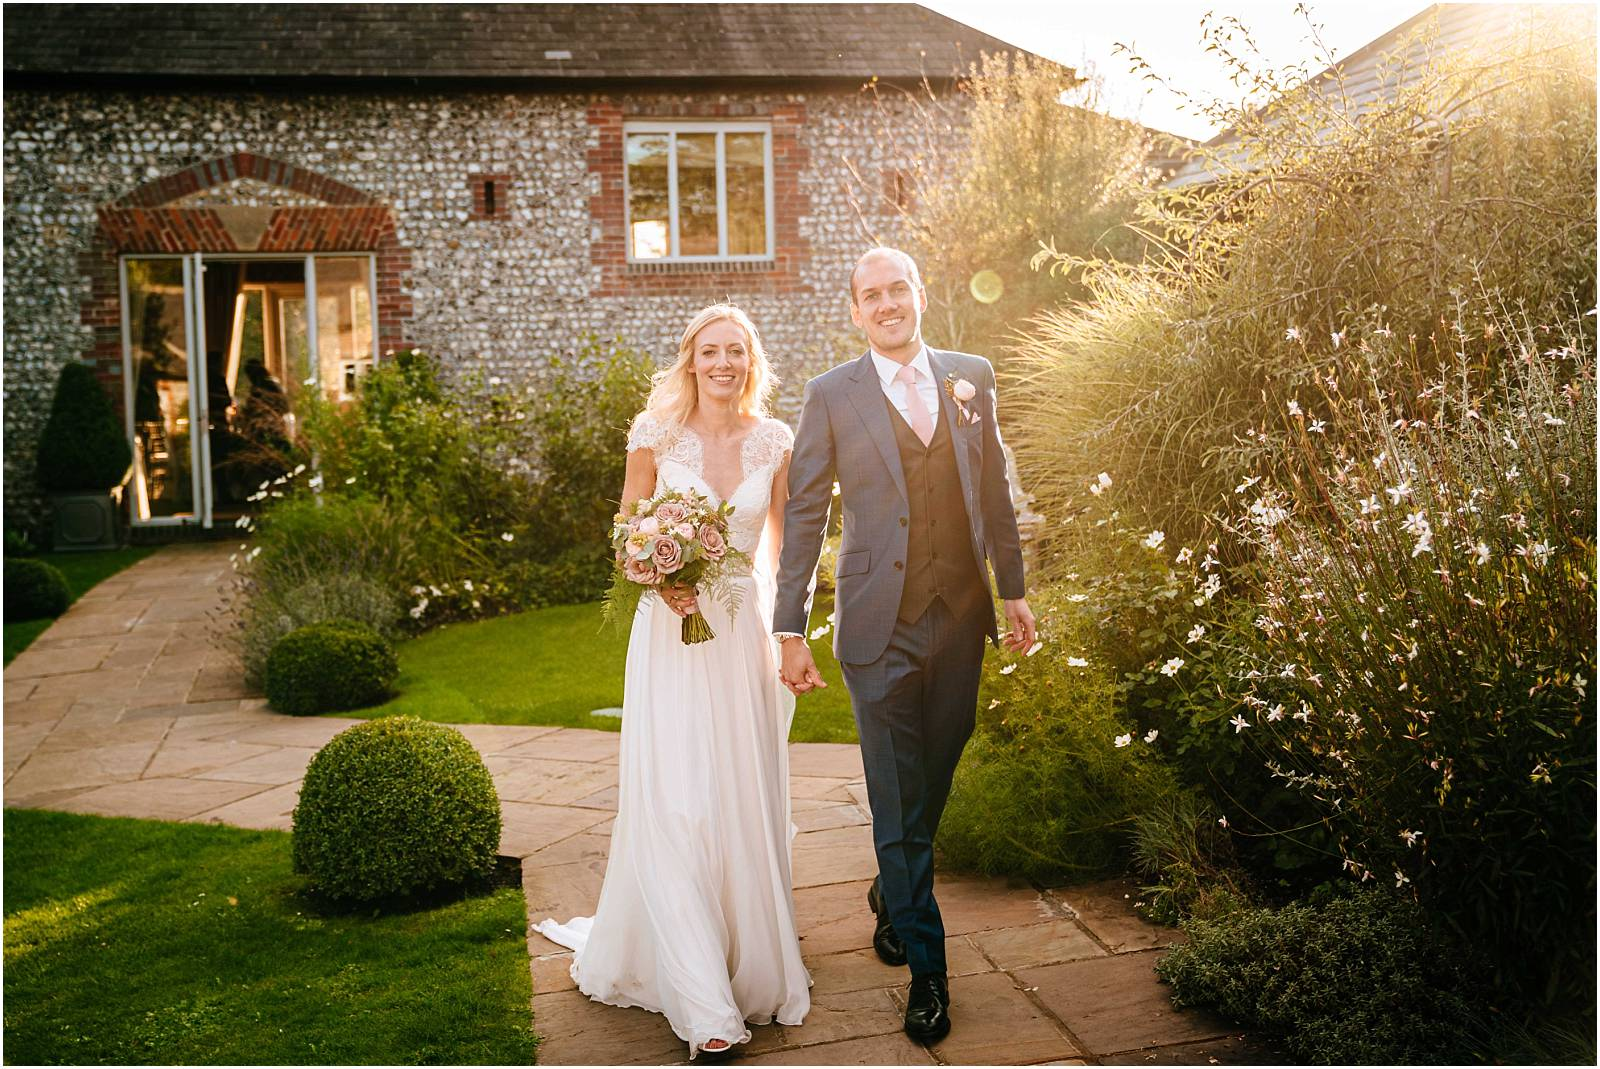 Farbridge Wedding Photography – Carly & Dan's sunny Sussex wedding